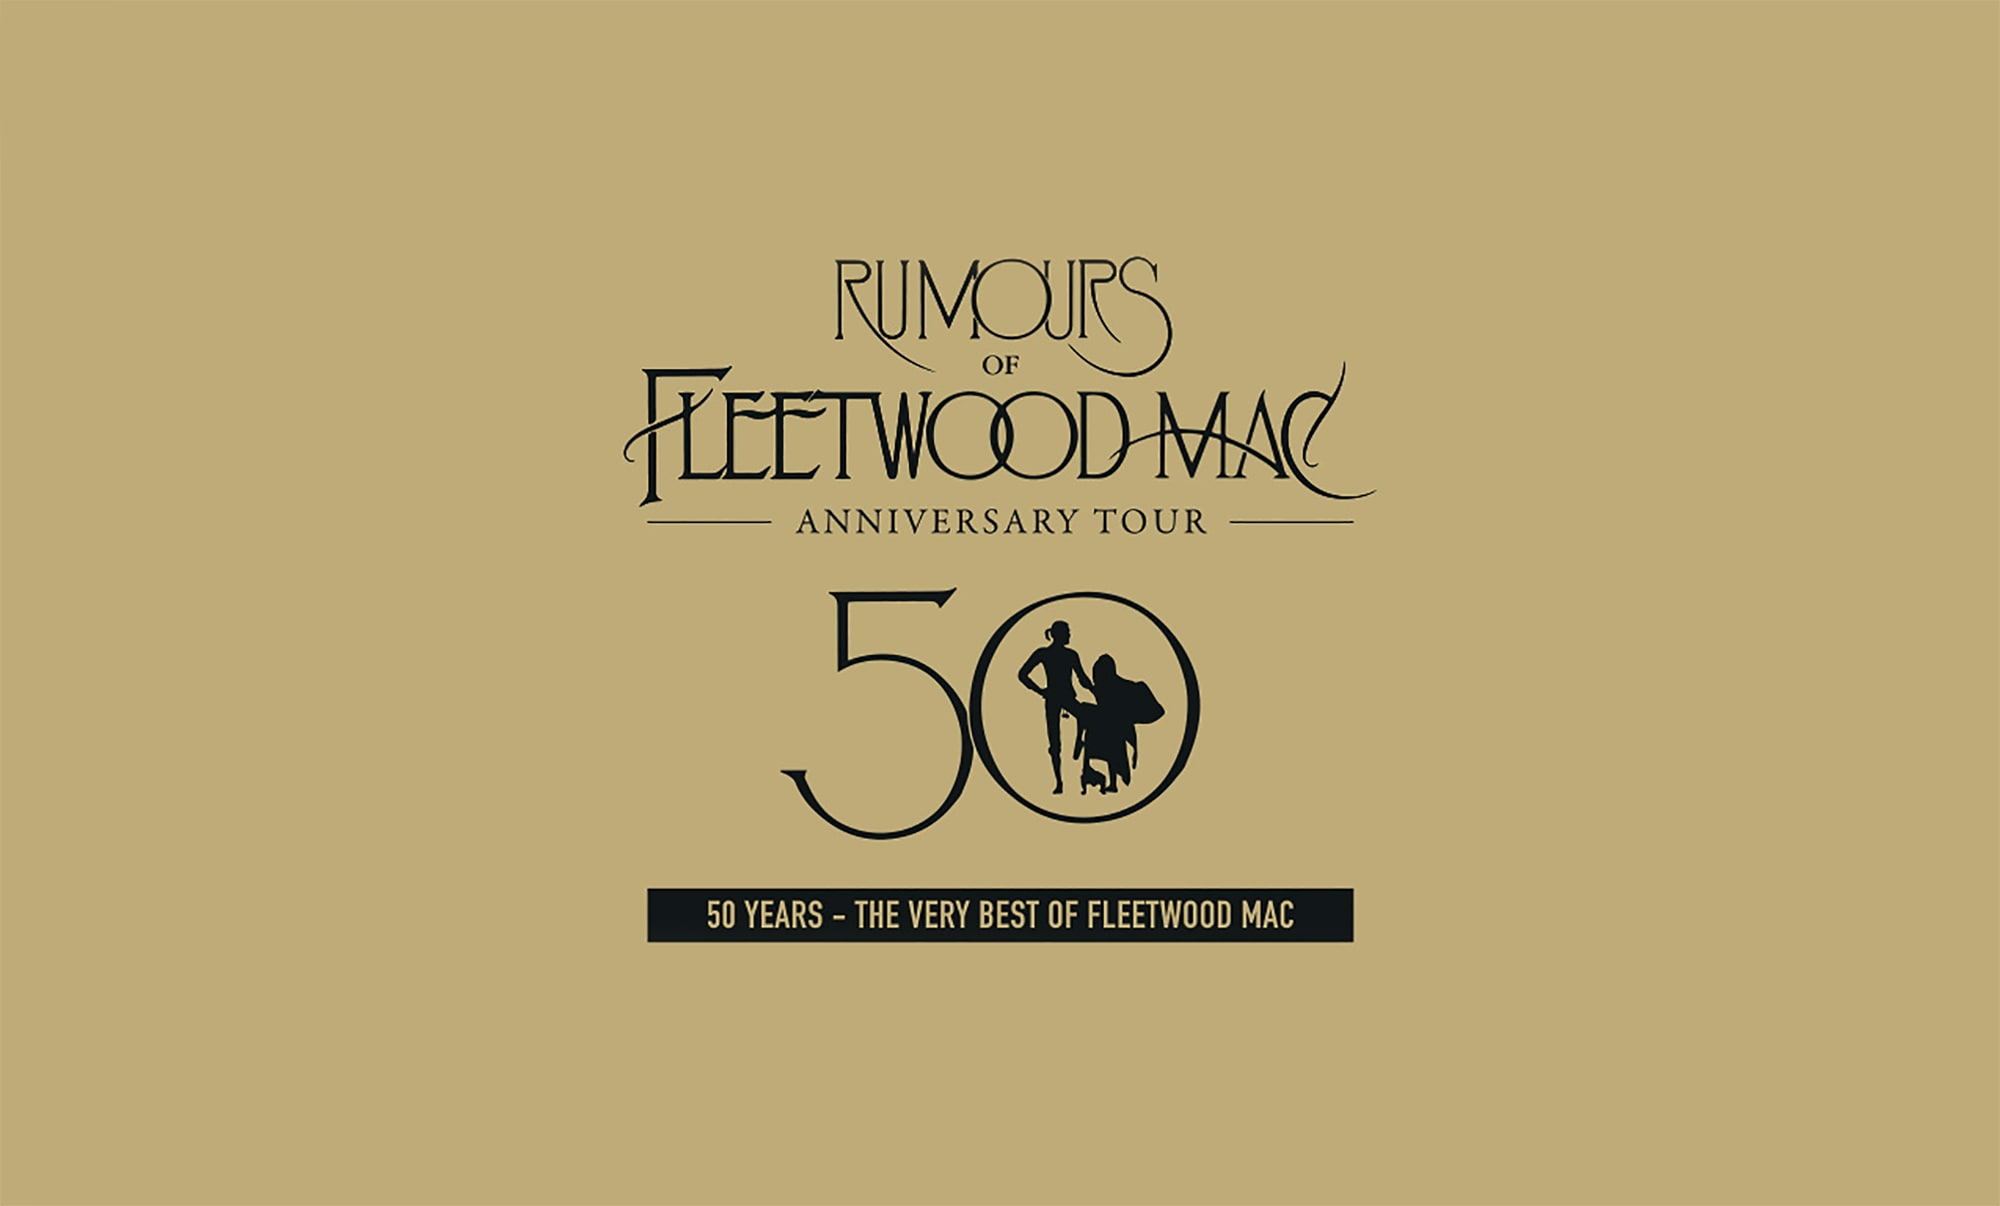 Fleetwood Mac main title